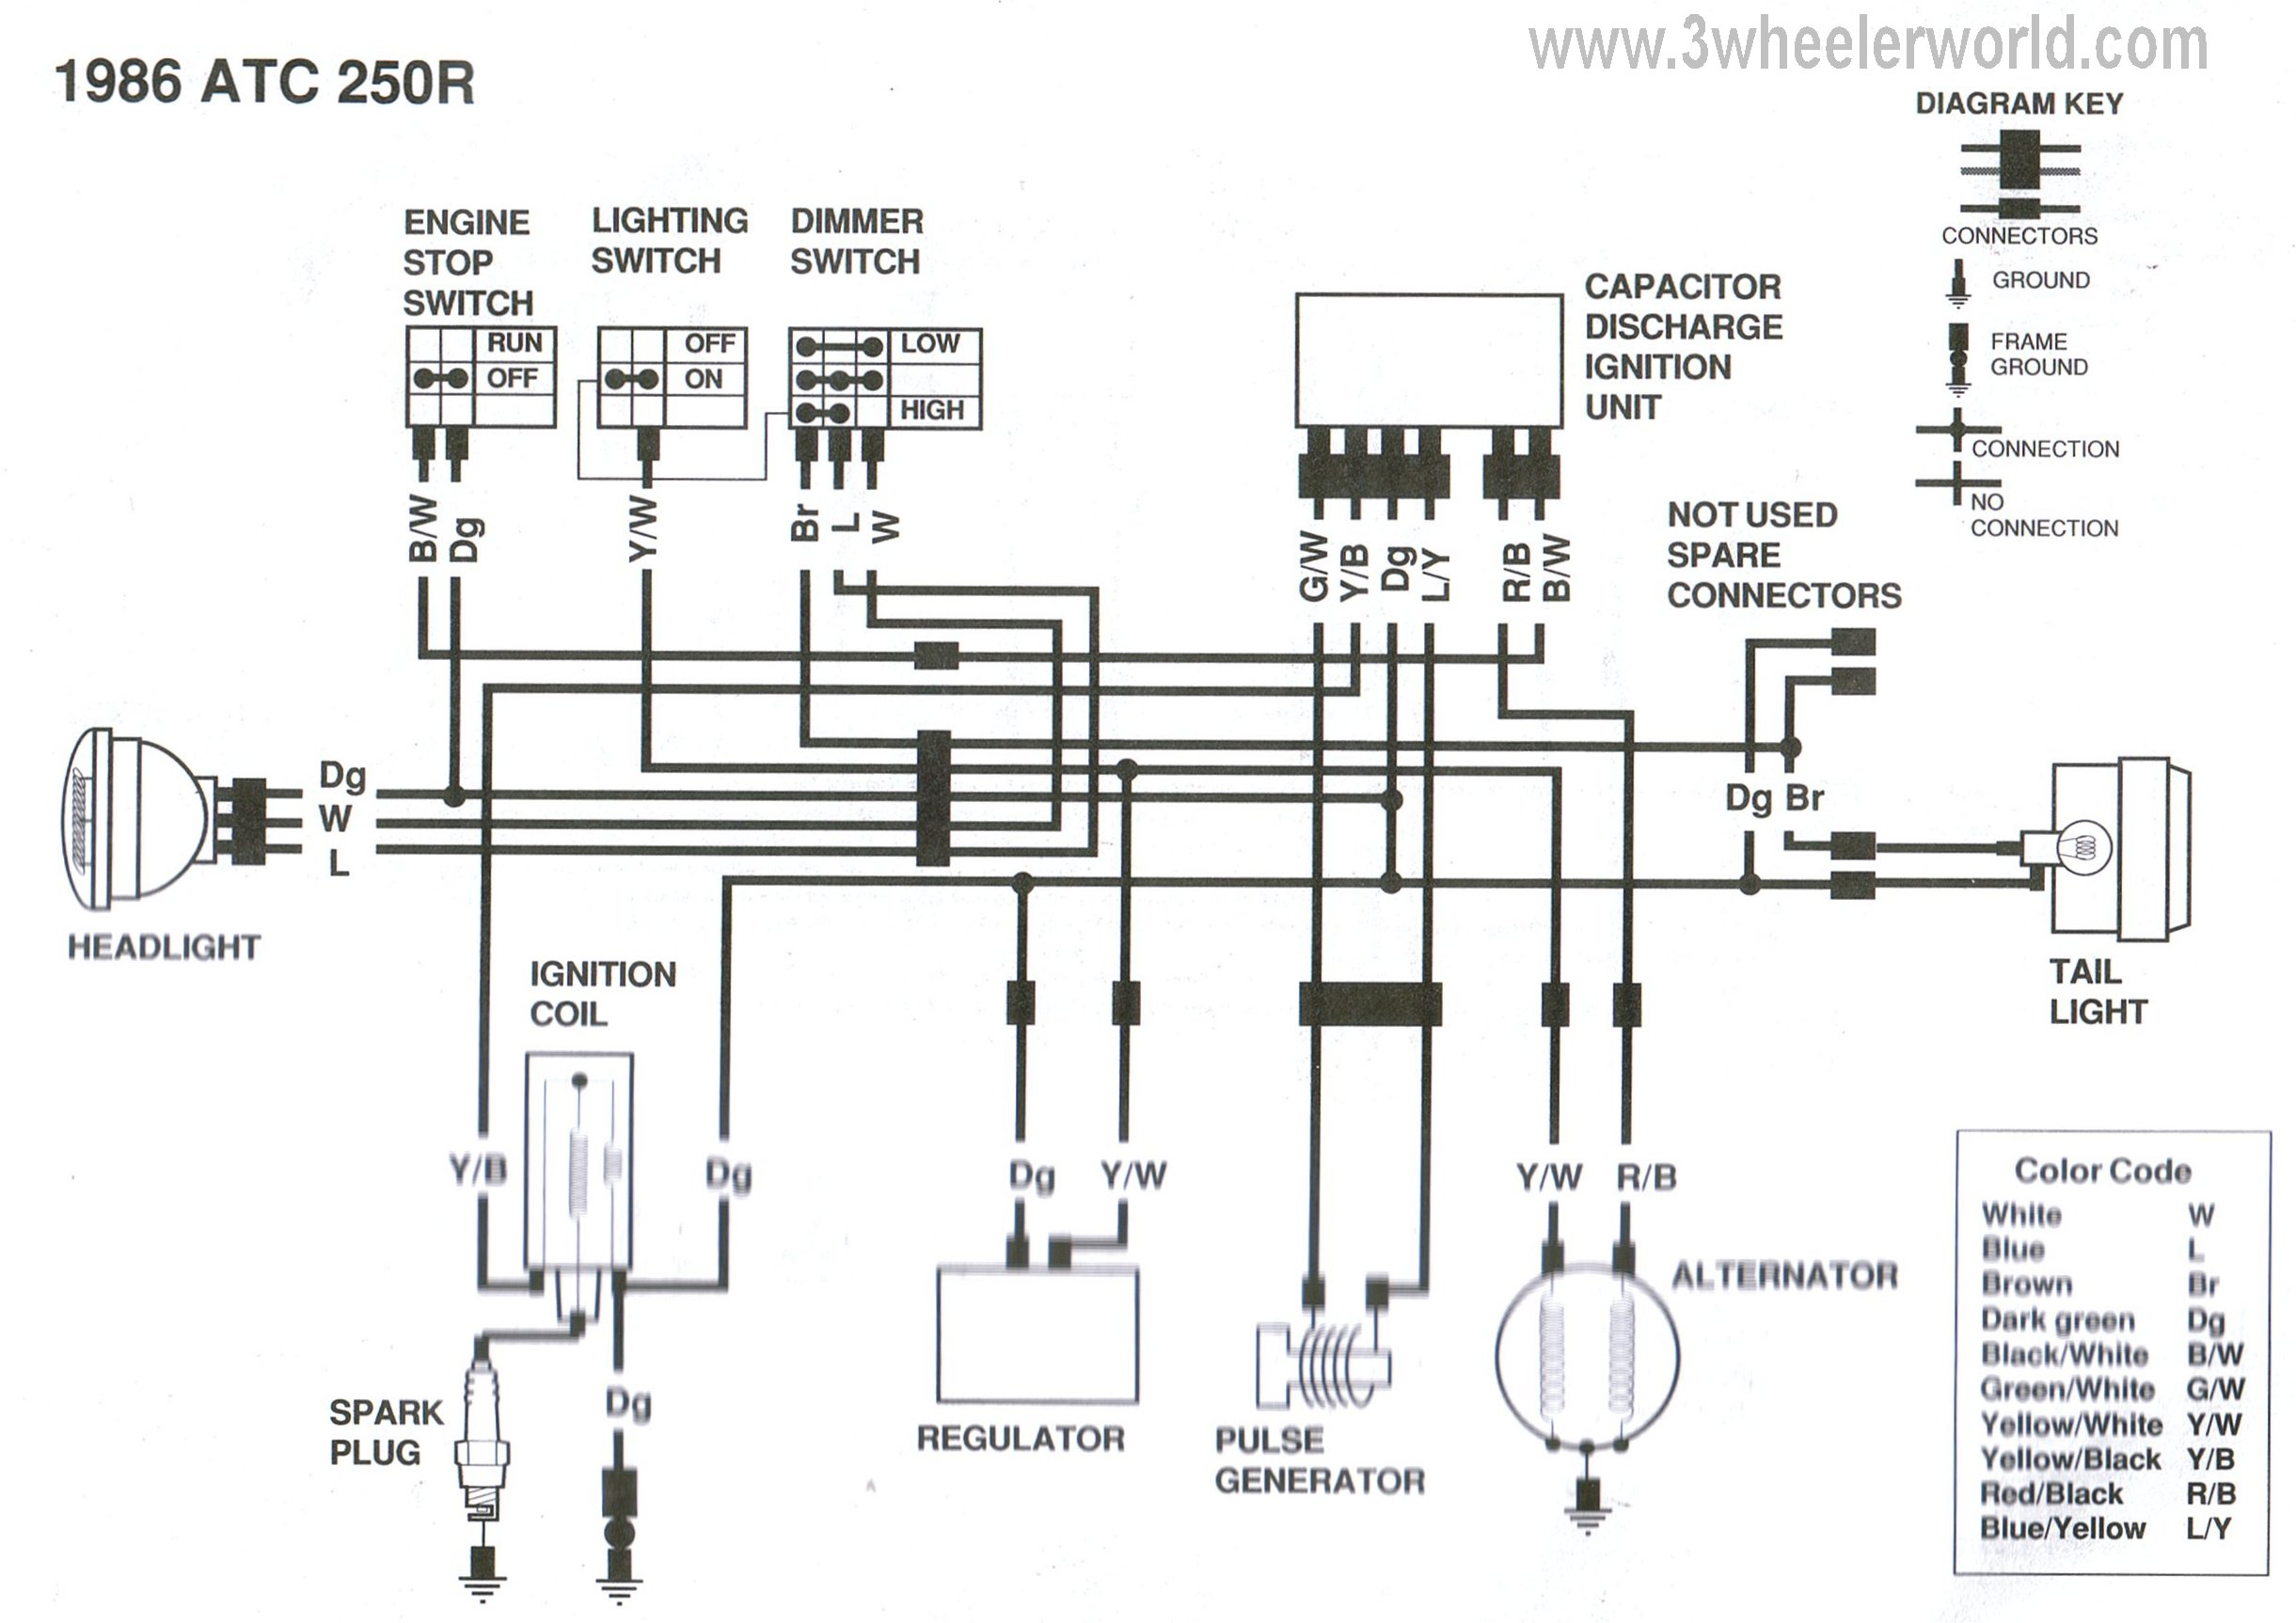 1990 Honda 300 Fourtrax Wiring Diagram